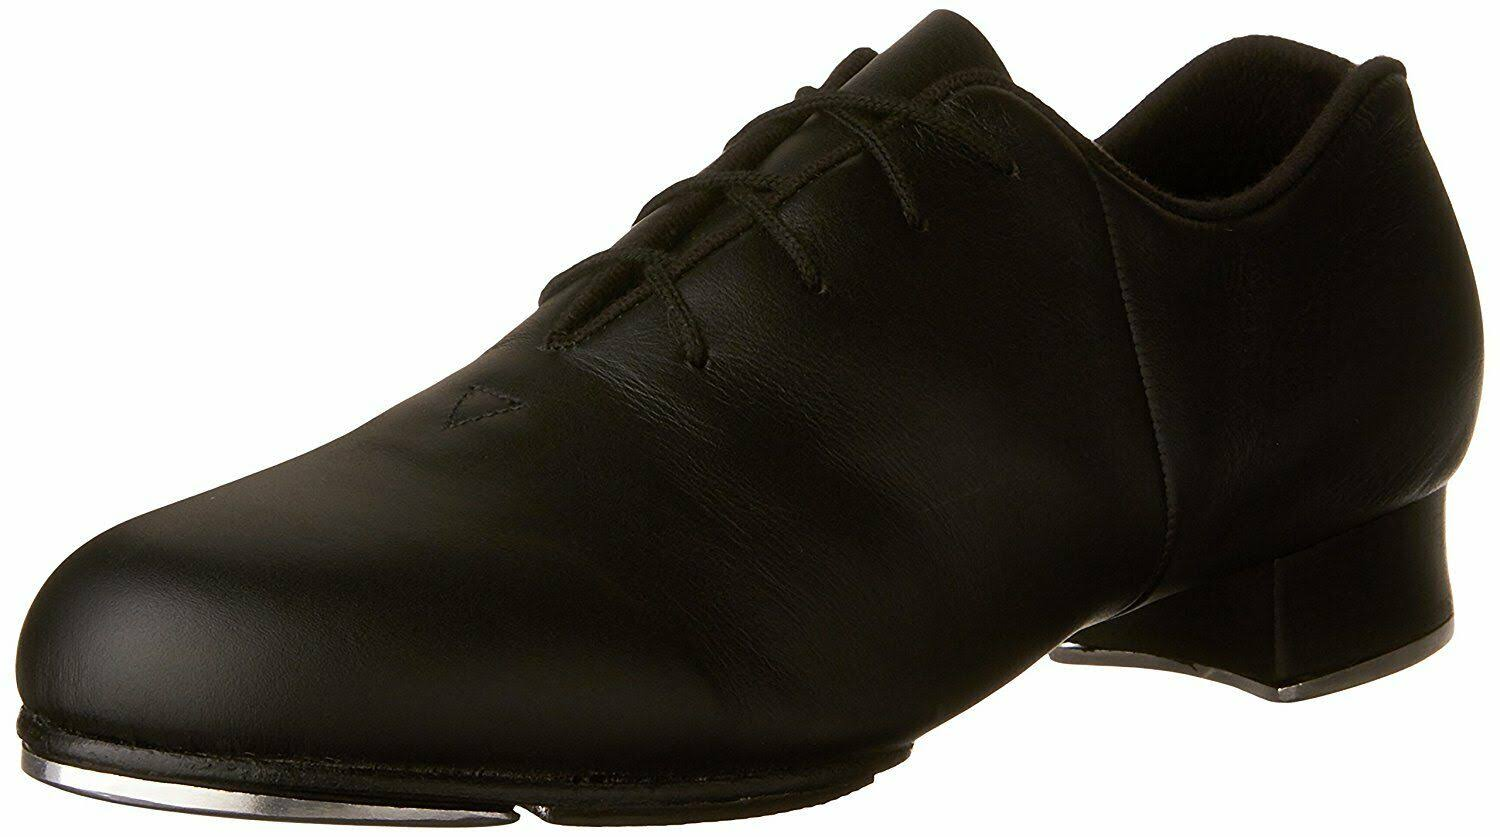 Bloch Women's Tap-Flex Tap Shoe - Black, US6.5